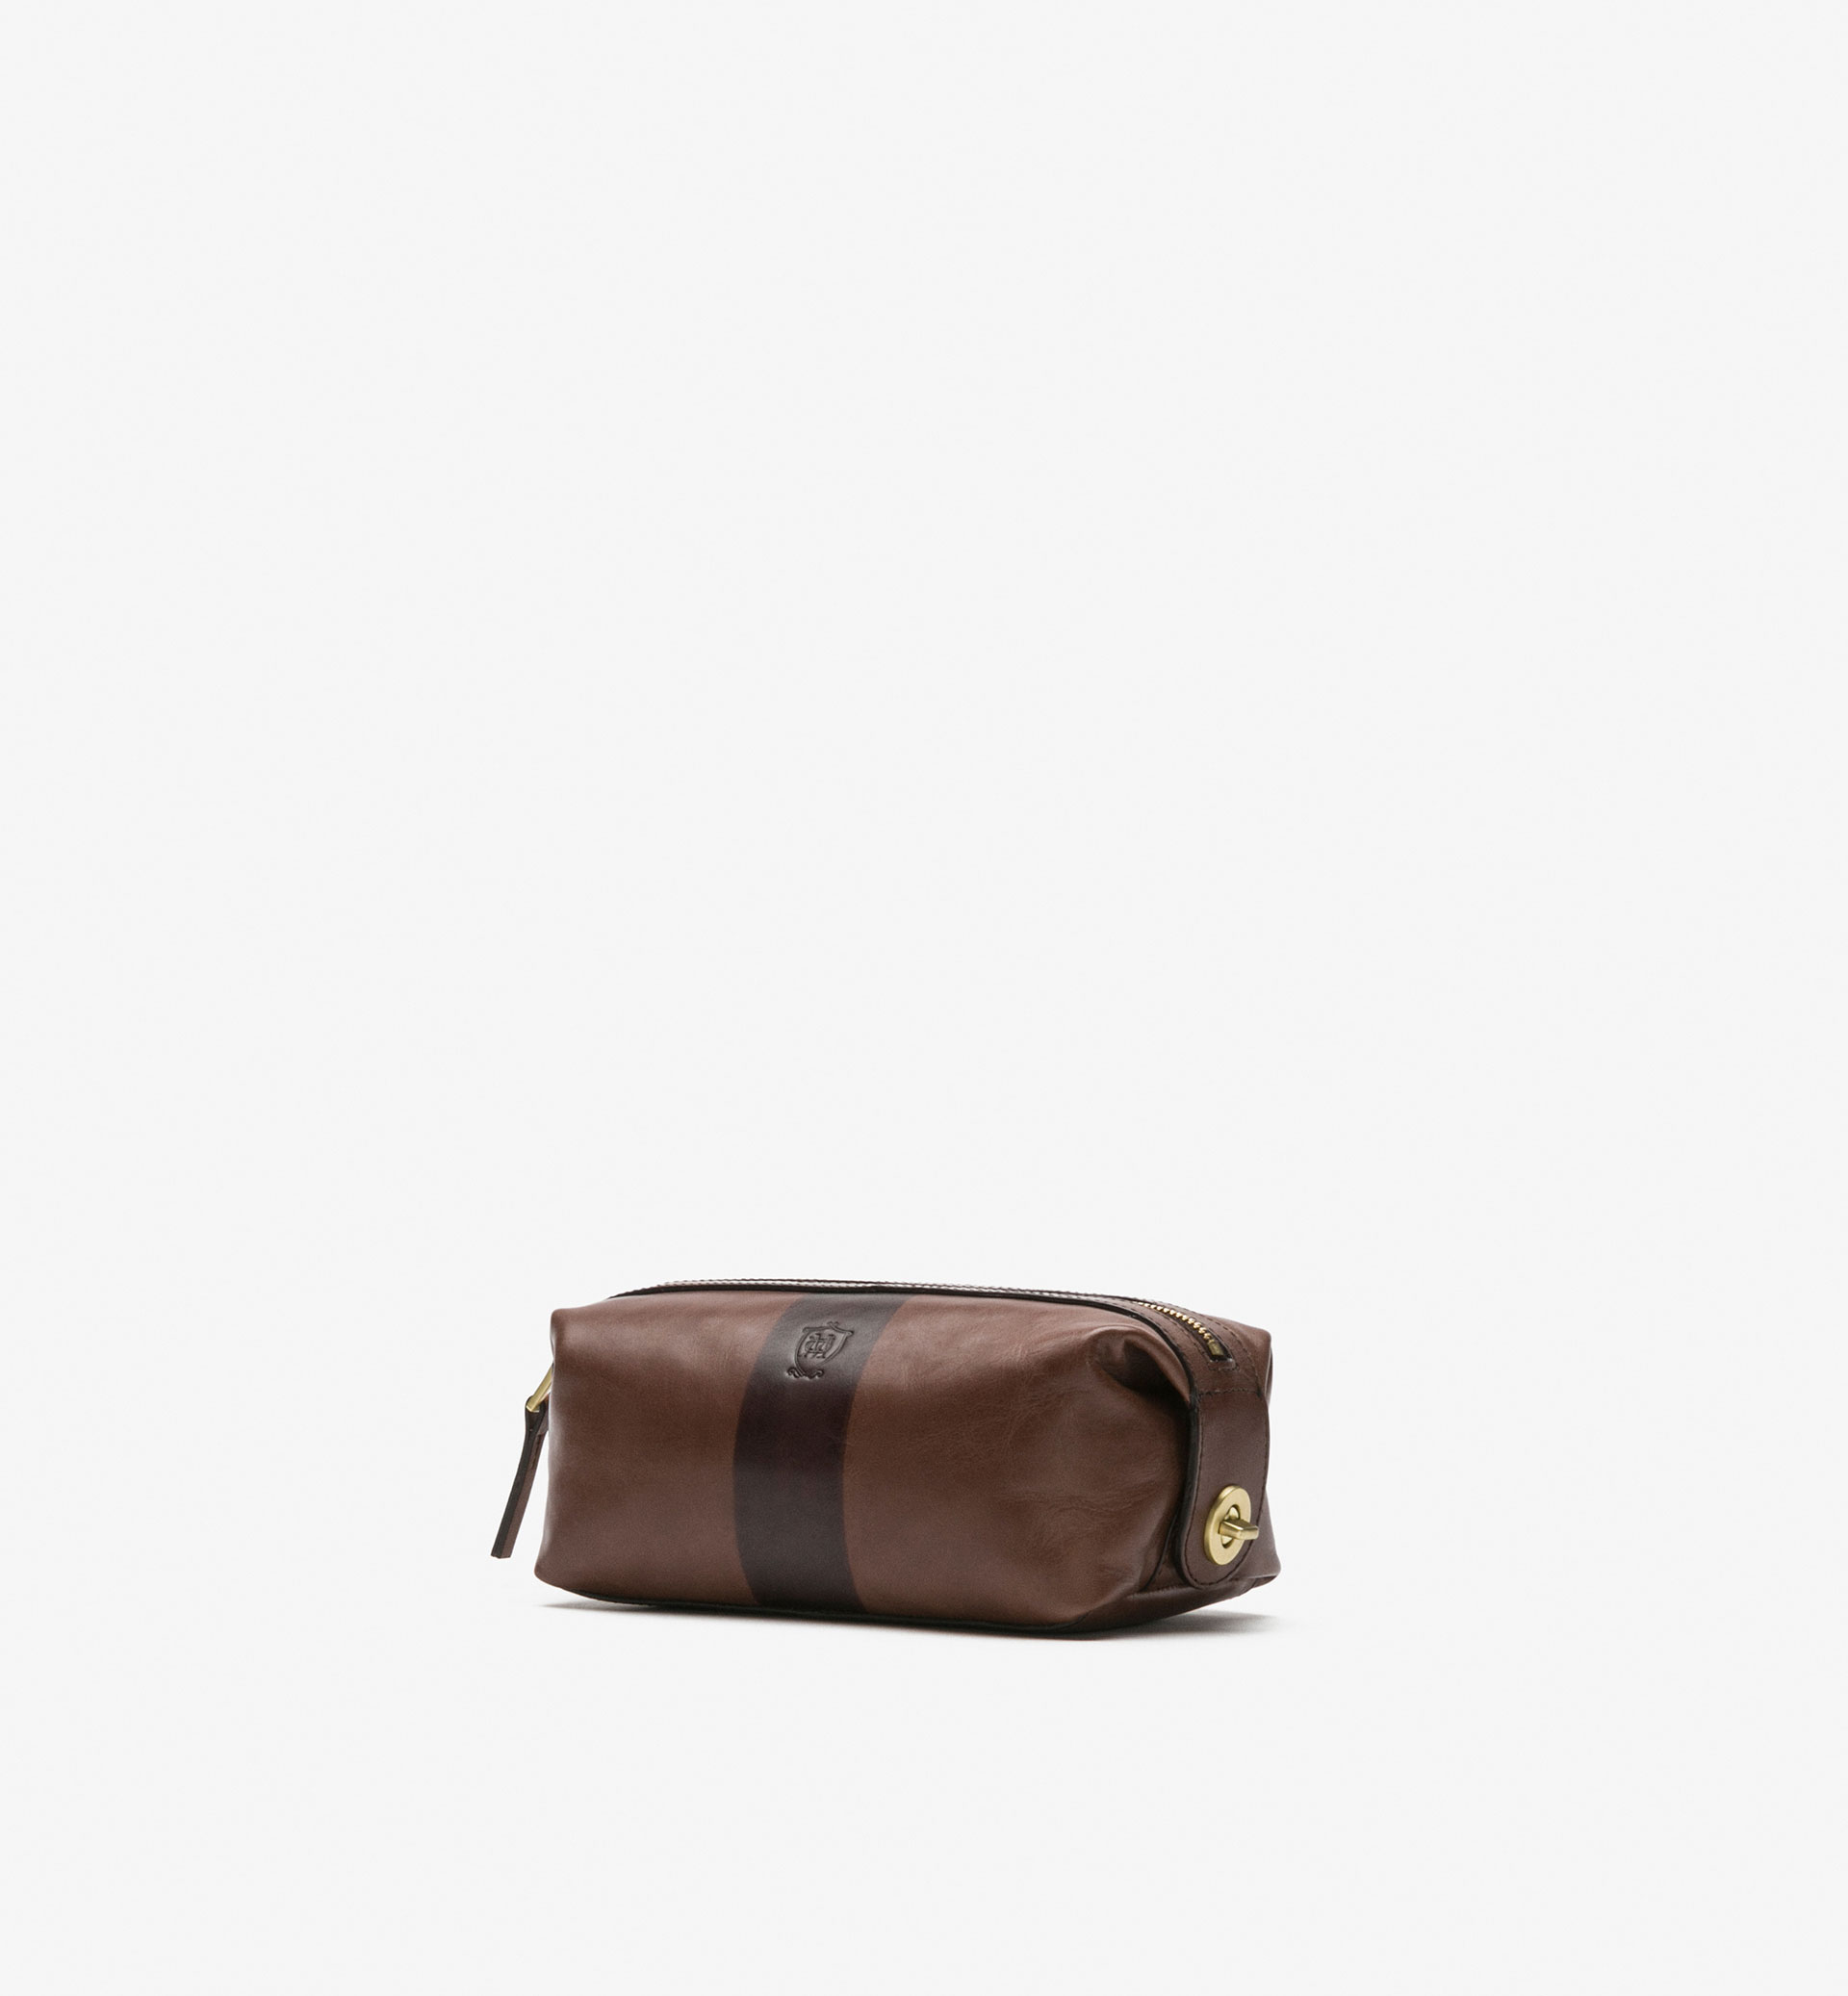 TWO-TONE LEATHER TOILETRY BAG